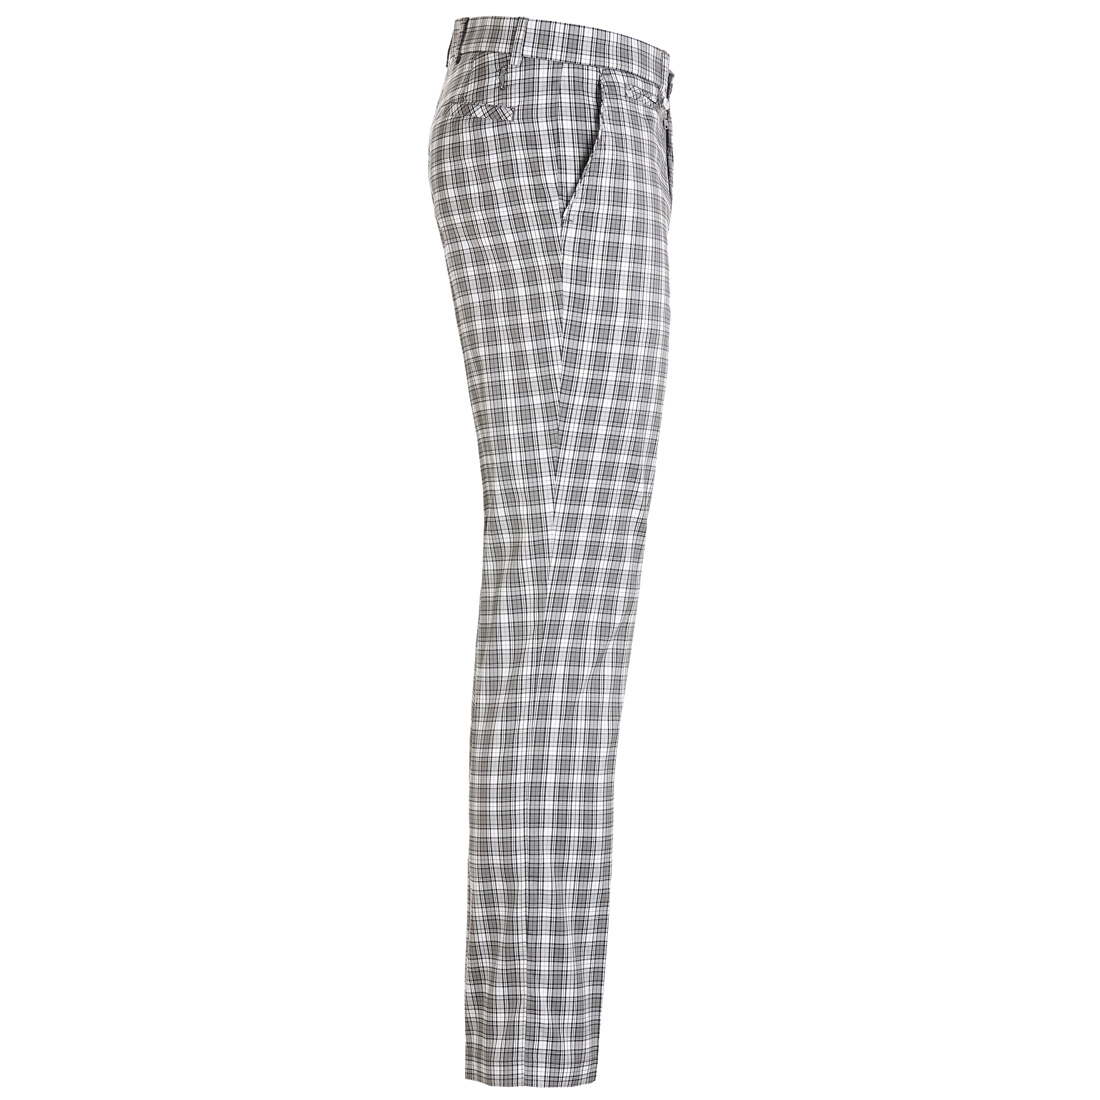 Karo Golfhose in Regular Fit, wasserabweisend